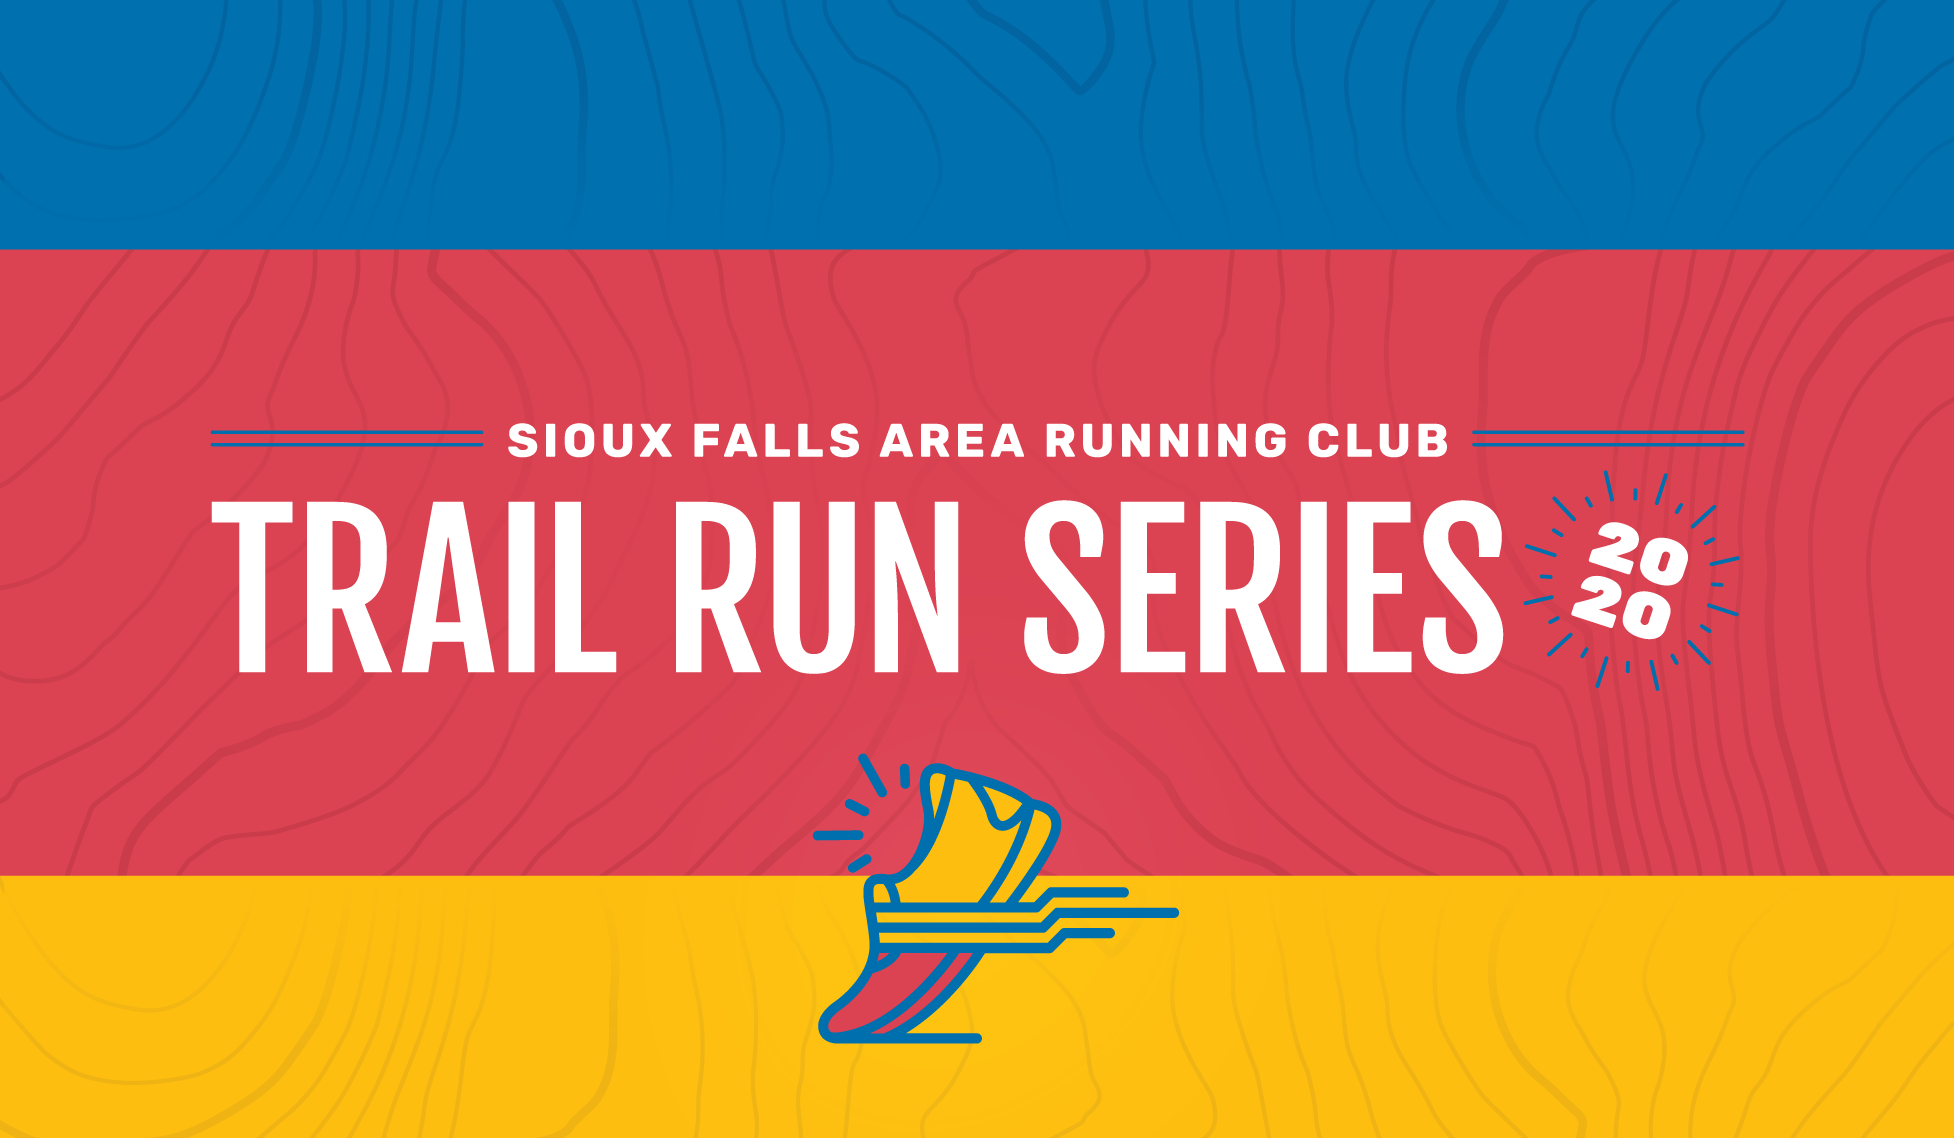 run-club-trail-run-logo